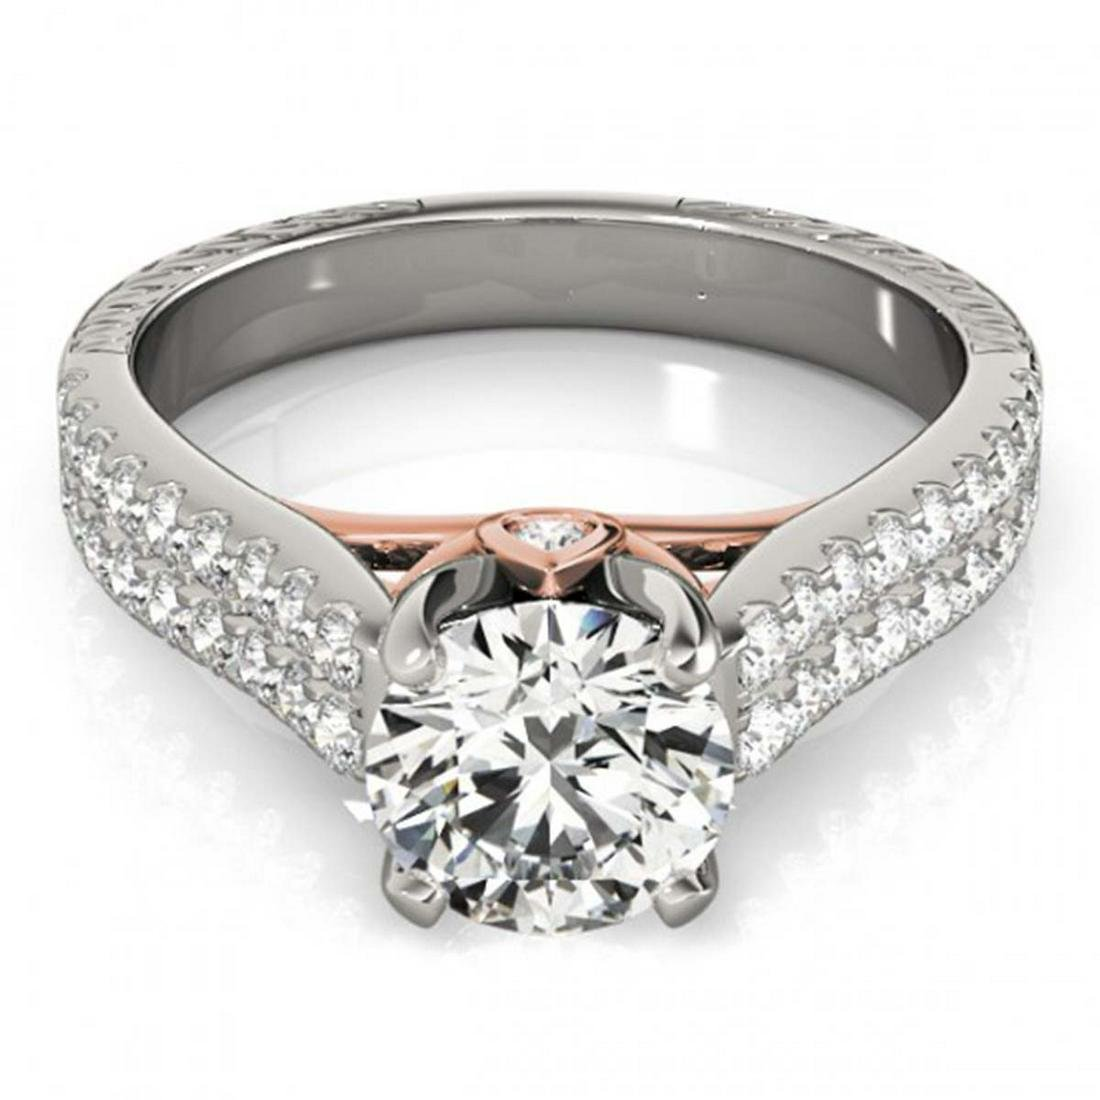 2.11 ctw VS/SI Diamond Ring 14K White & Rose Gold -